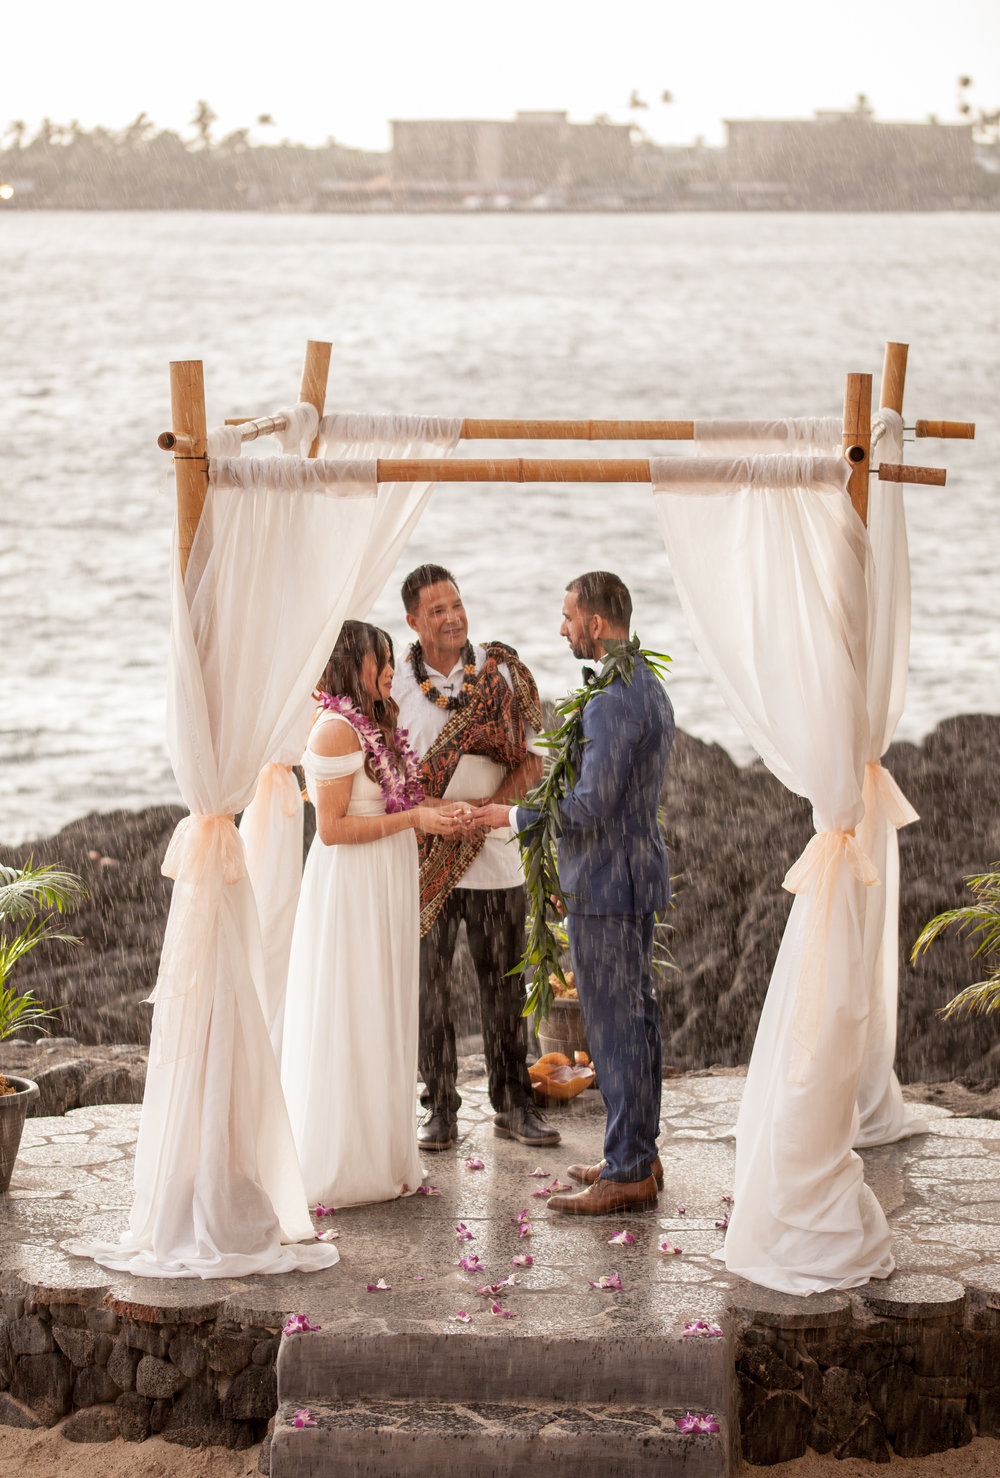 big island hawaii royal kona resort beach wedding © kelilina photography 20170615180111.jpg